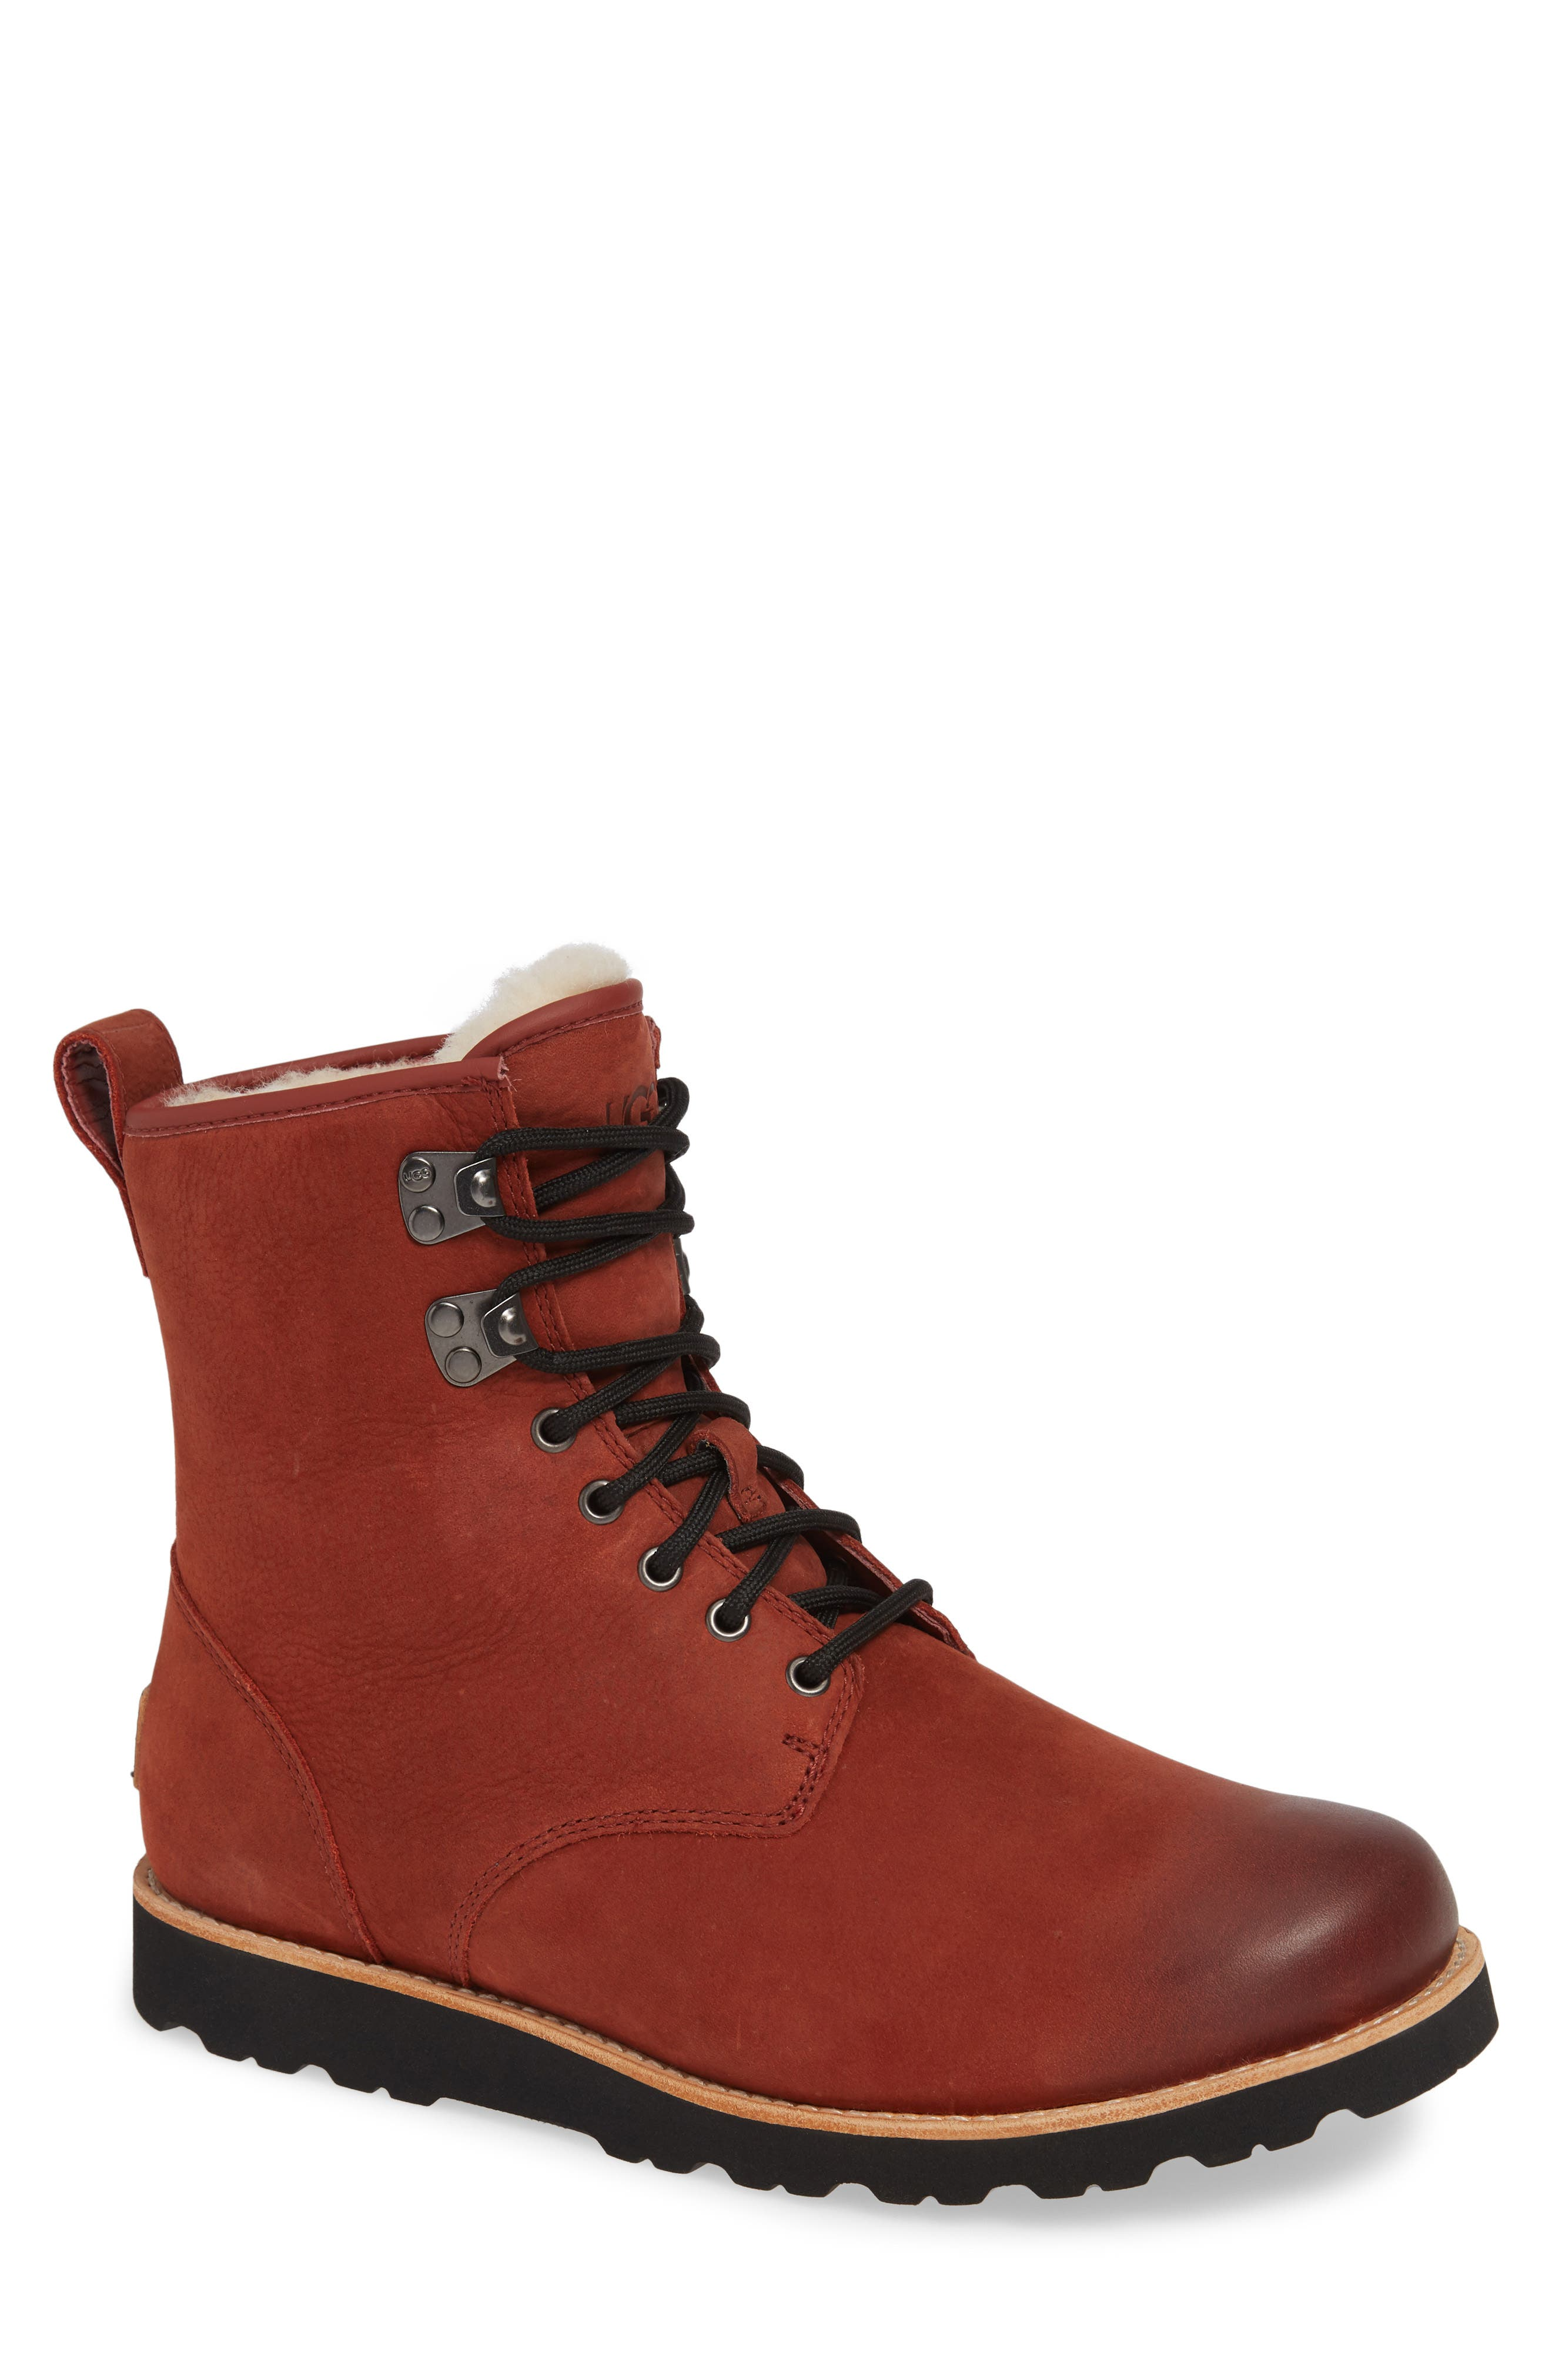 Hannen Waterproof Boot,                             Main thumbnail 1, color,                             RED OXIDE